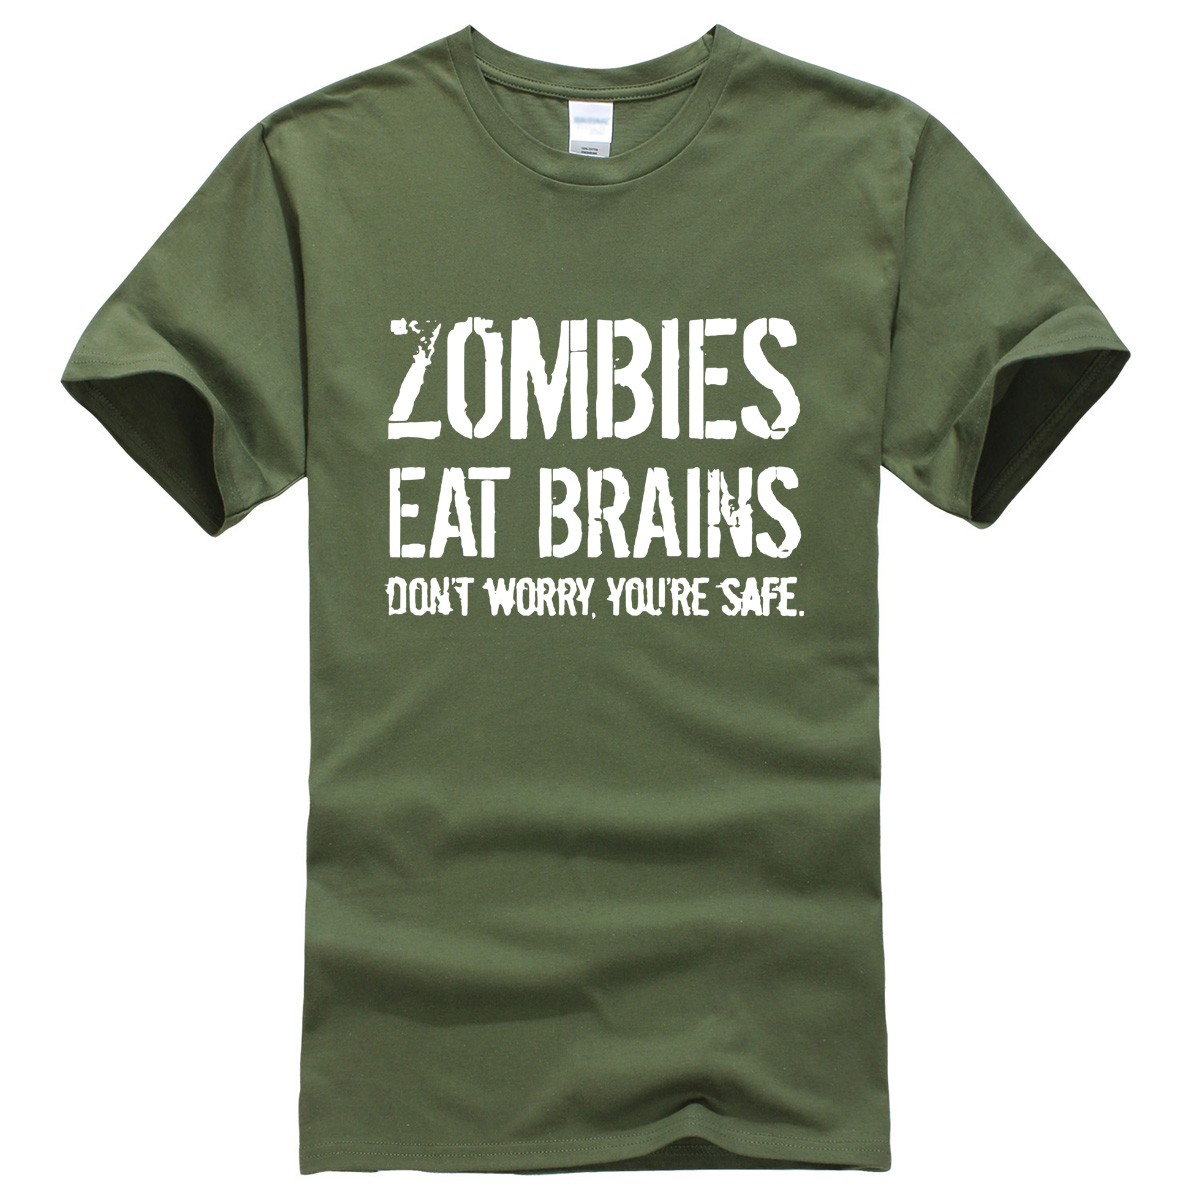 Men's   T  -  shirts   Zombies Eat Brains printed 2019 summer casual funny brand-clothing   t     shirt   for men sportwear   T  -  shirt   harajuku top